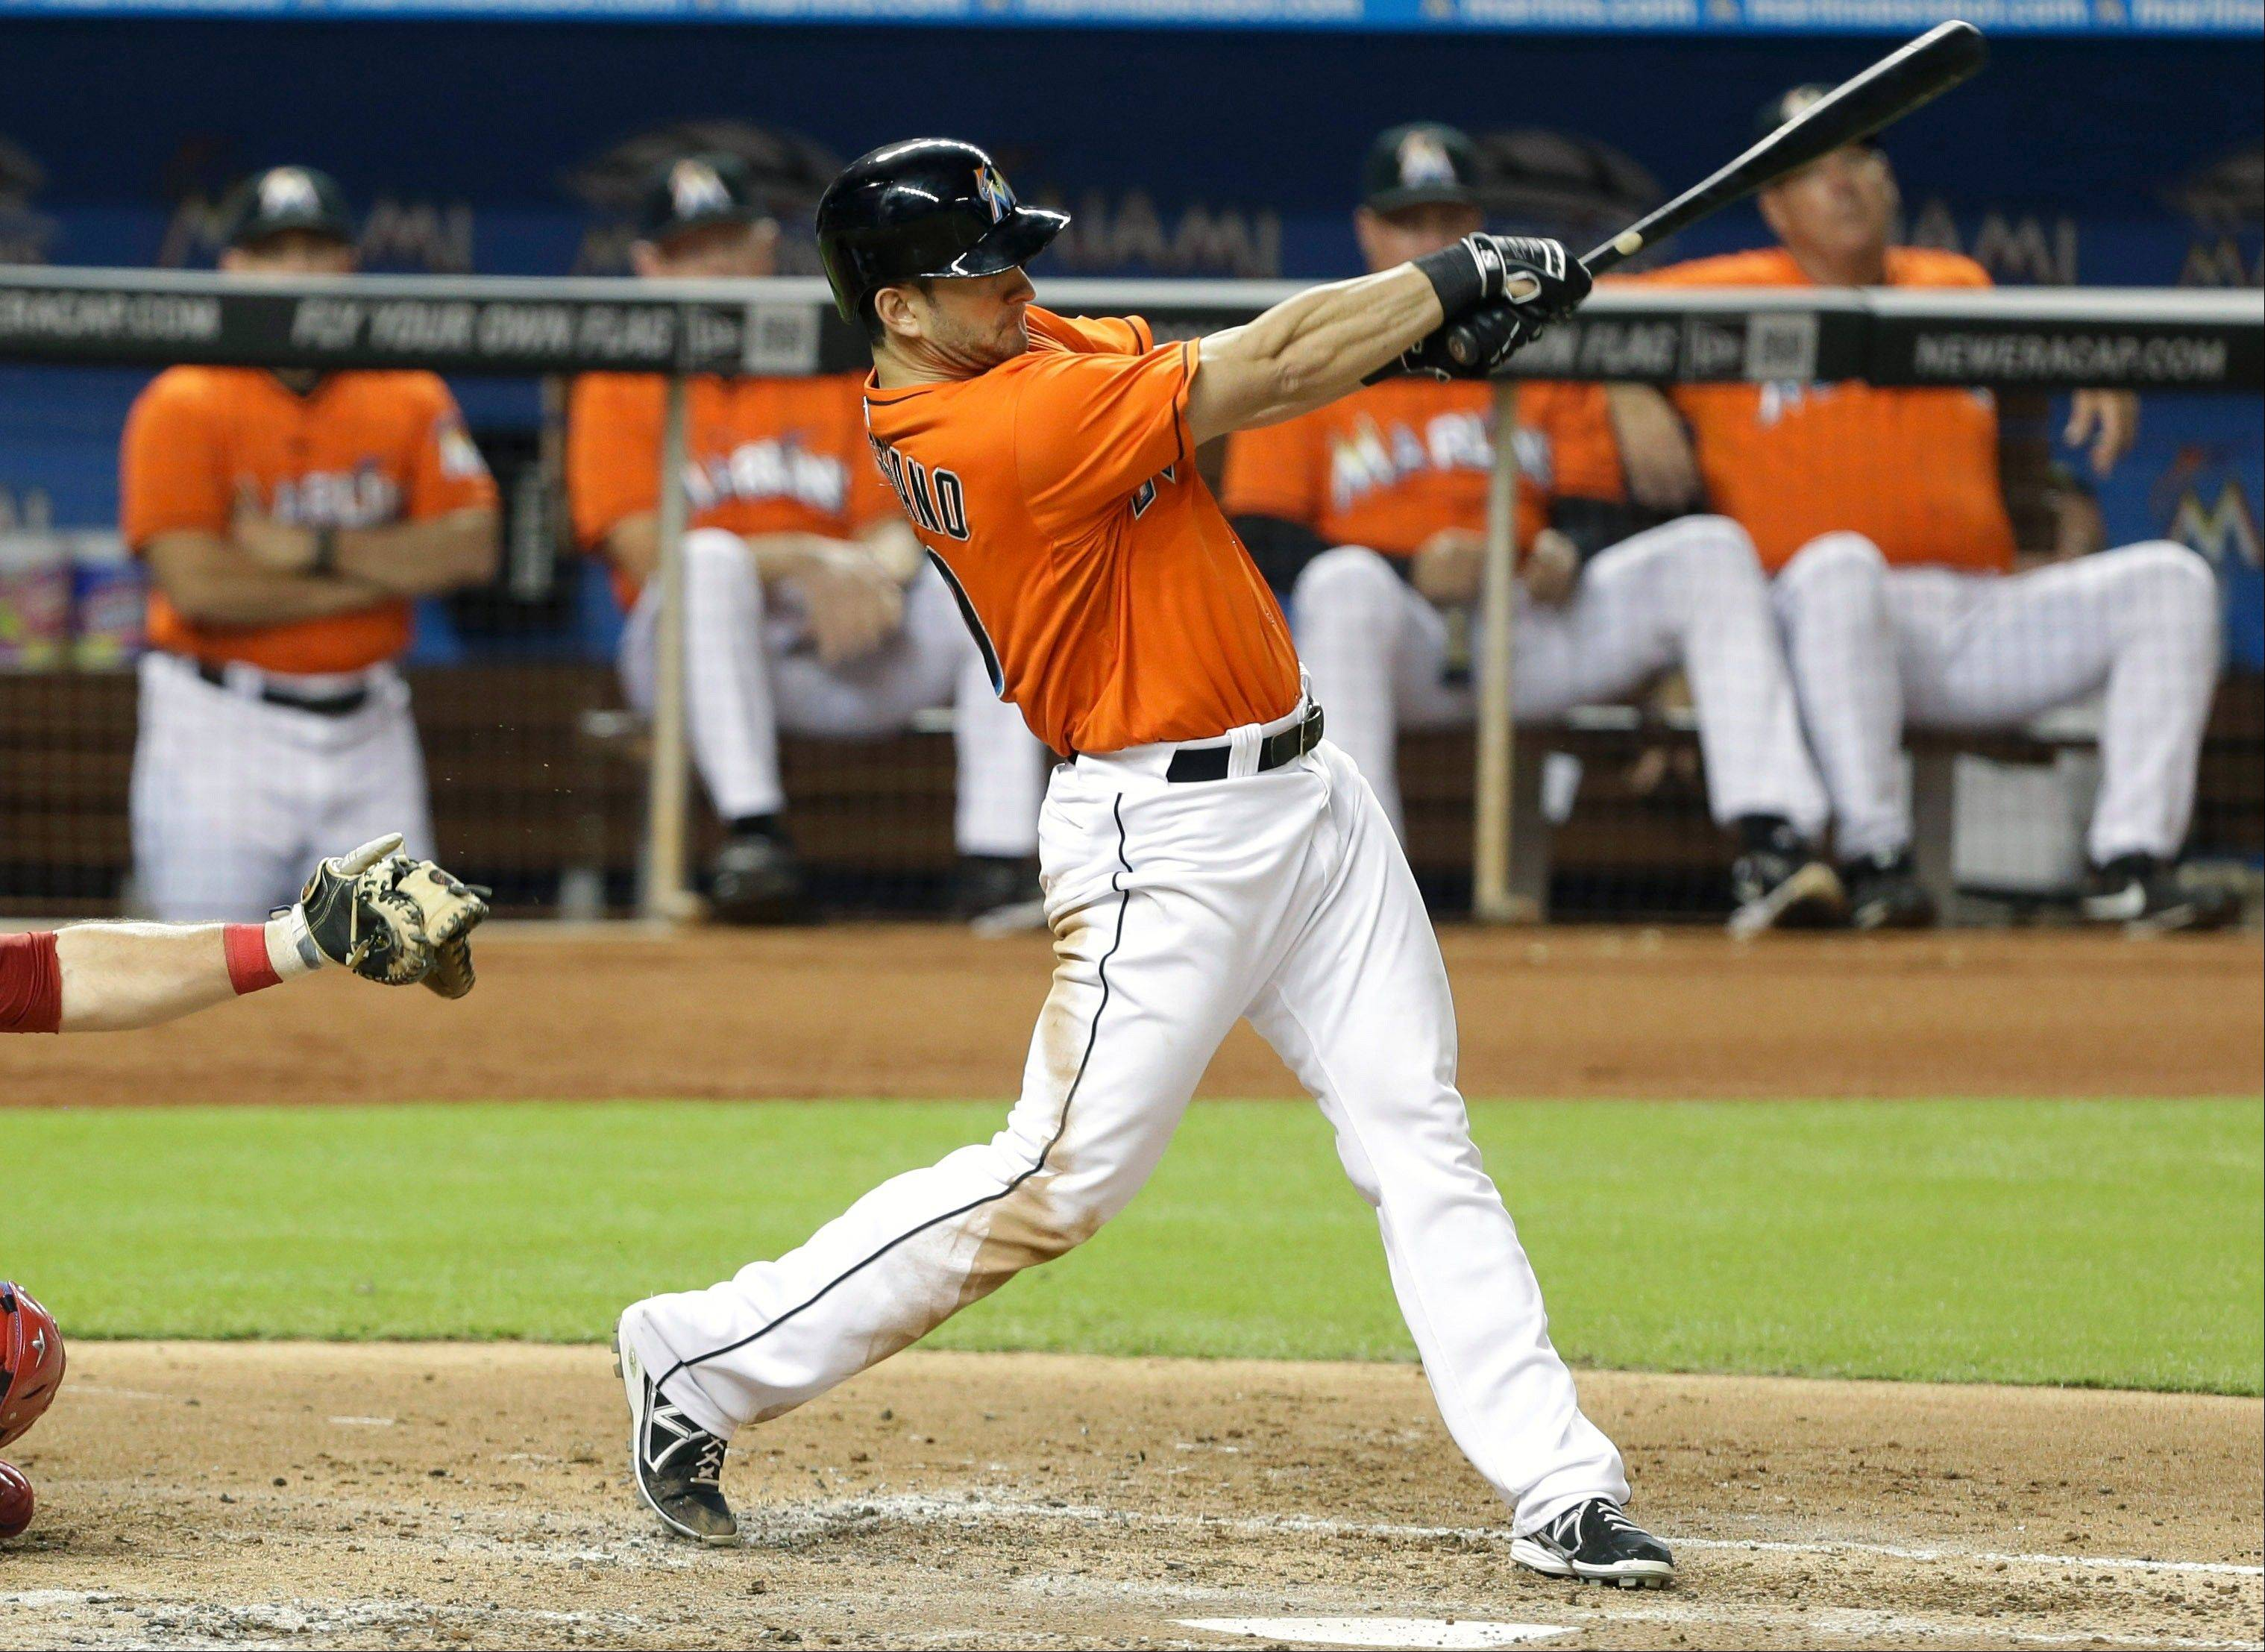 Miami traded right-handed hitting outfielder Justin Ruggiano, above, to the Cubs for left-handed hitter Brian Bogusevic.